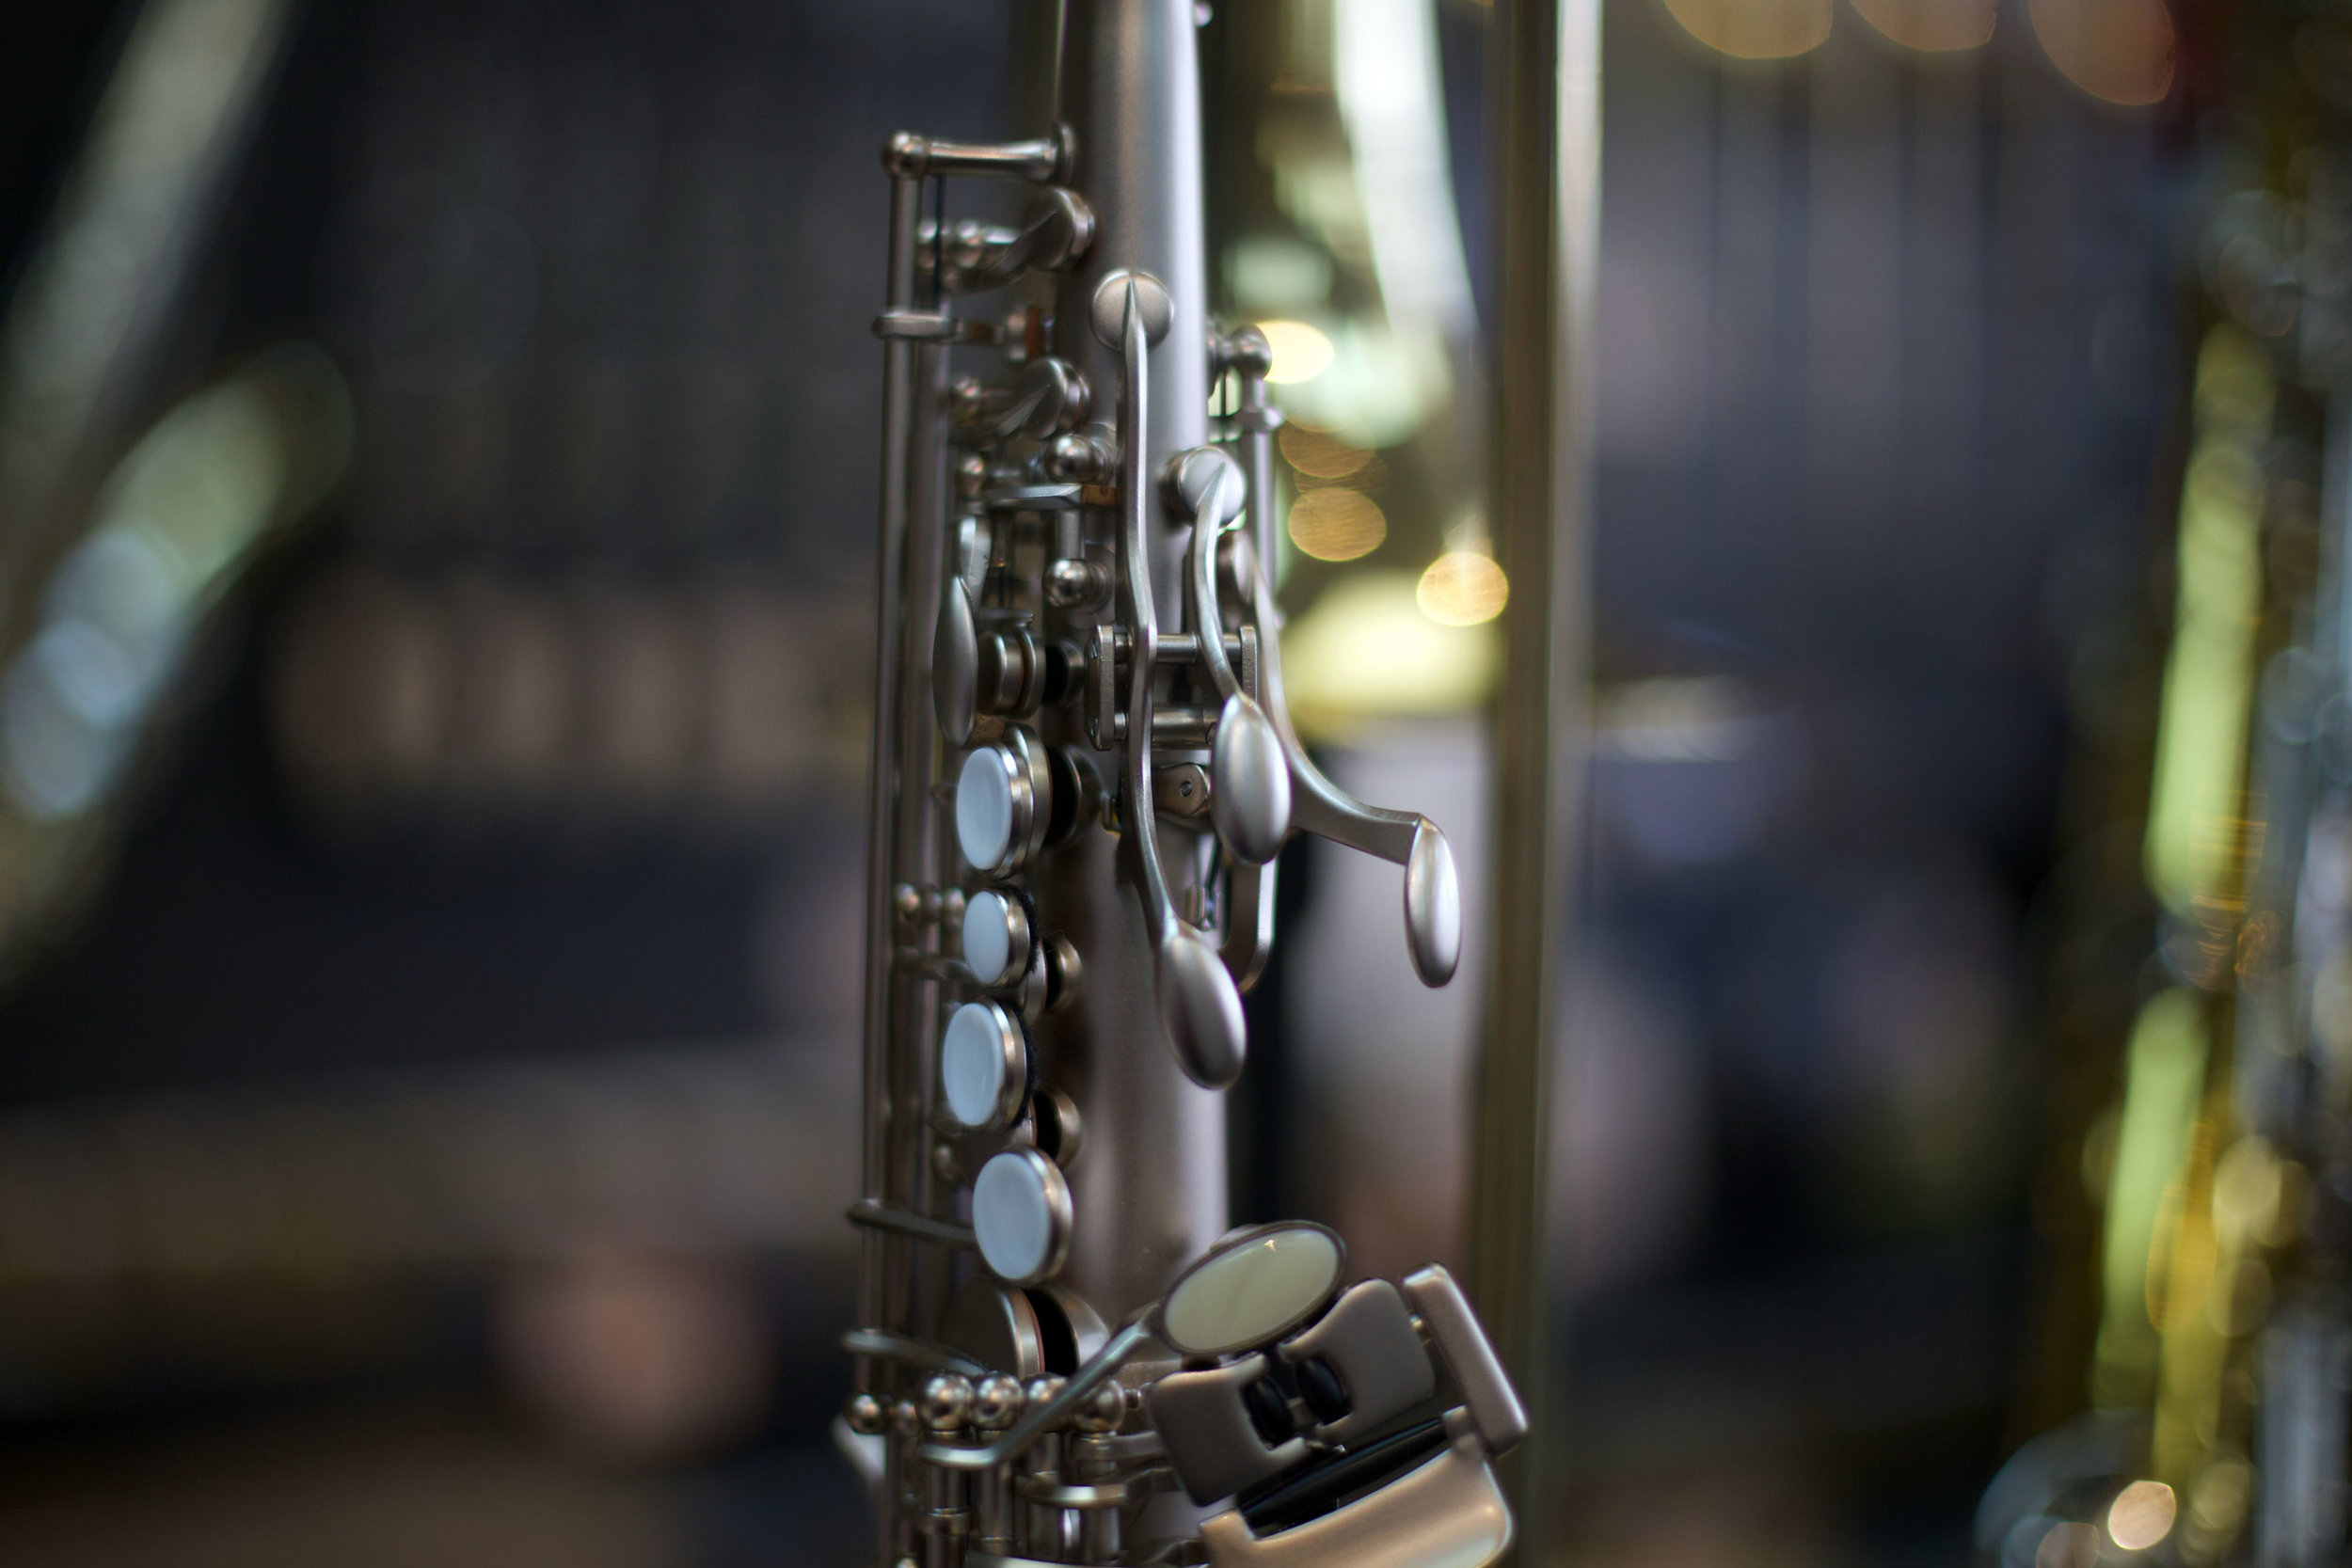 Local and trusted for over 40 years. - Under our student instrument lease plan, your student receives a name brand instrument in perfect playing condition for the entire school year. No monthly payments, no obligations, no buy dates. You will also receive 100% of the first year lease fee as a credit towards a minimum instrument purchase.Protect your lease instrument for the entire school year for only $20.00. This covers accidental damage, fire, and theft. In the case of fire or theft, the lease customer is responsible for filing the proper police or fire department report within 72 hours of the incident and providing us a copy with any claim.We will provide all repair work on the instrument required to keep it in good playing condition for the length of the lease agreement. Repair that exceeds normal wear and tear is billed at our regular of repair shop rate. In the event Tigard Music considers the instrument to be damaged beyond repair, the replacement value indicated by the agreement will be required.